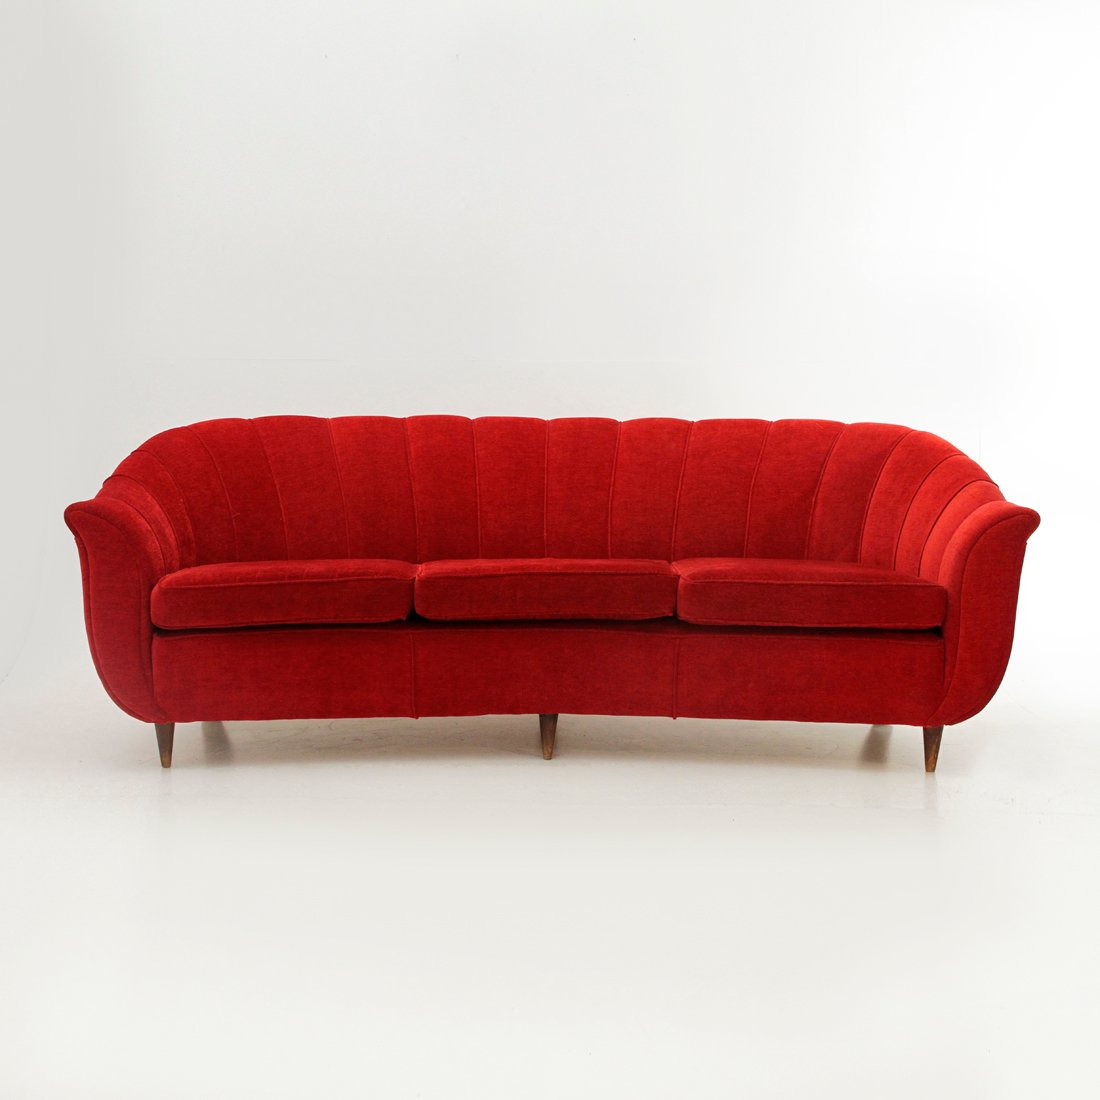 italian 3 seater red sofa 1950s for sale at pamono - Red Sofa